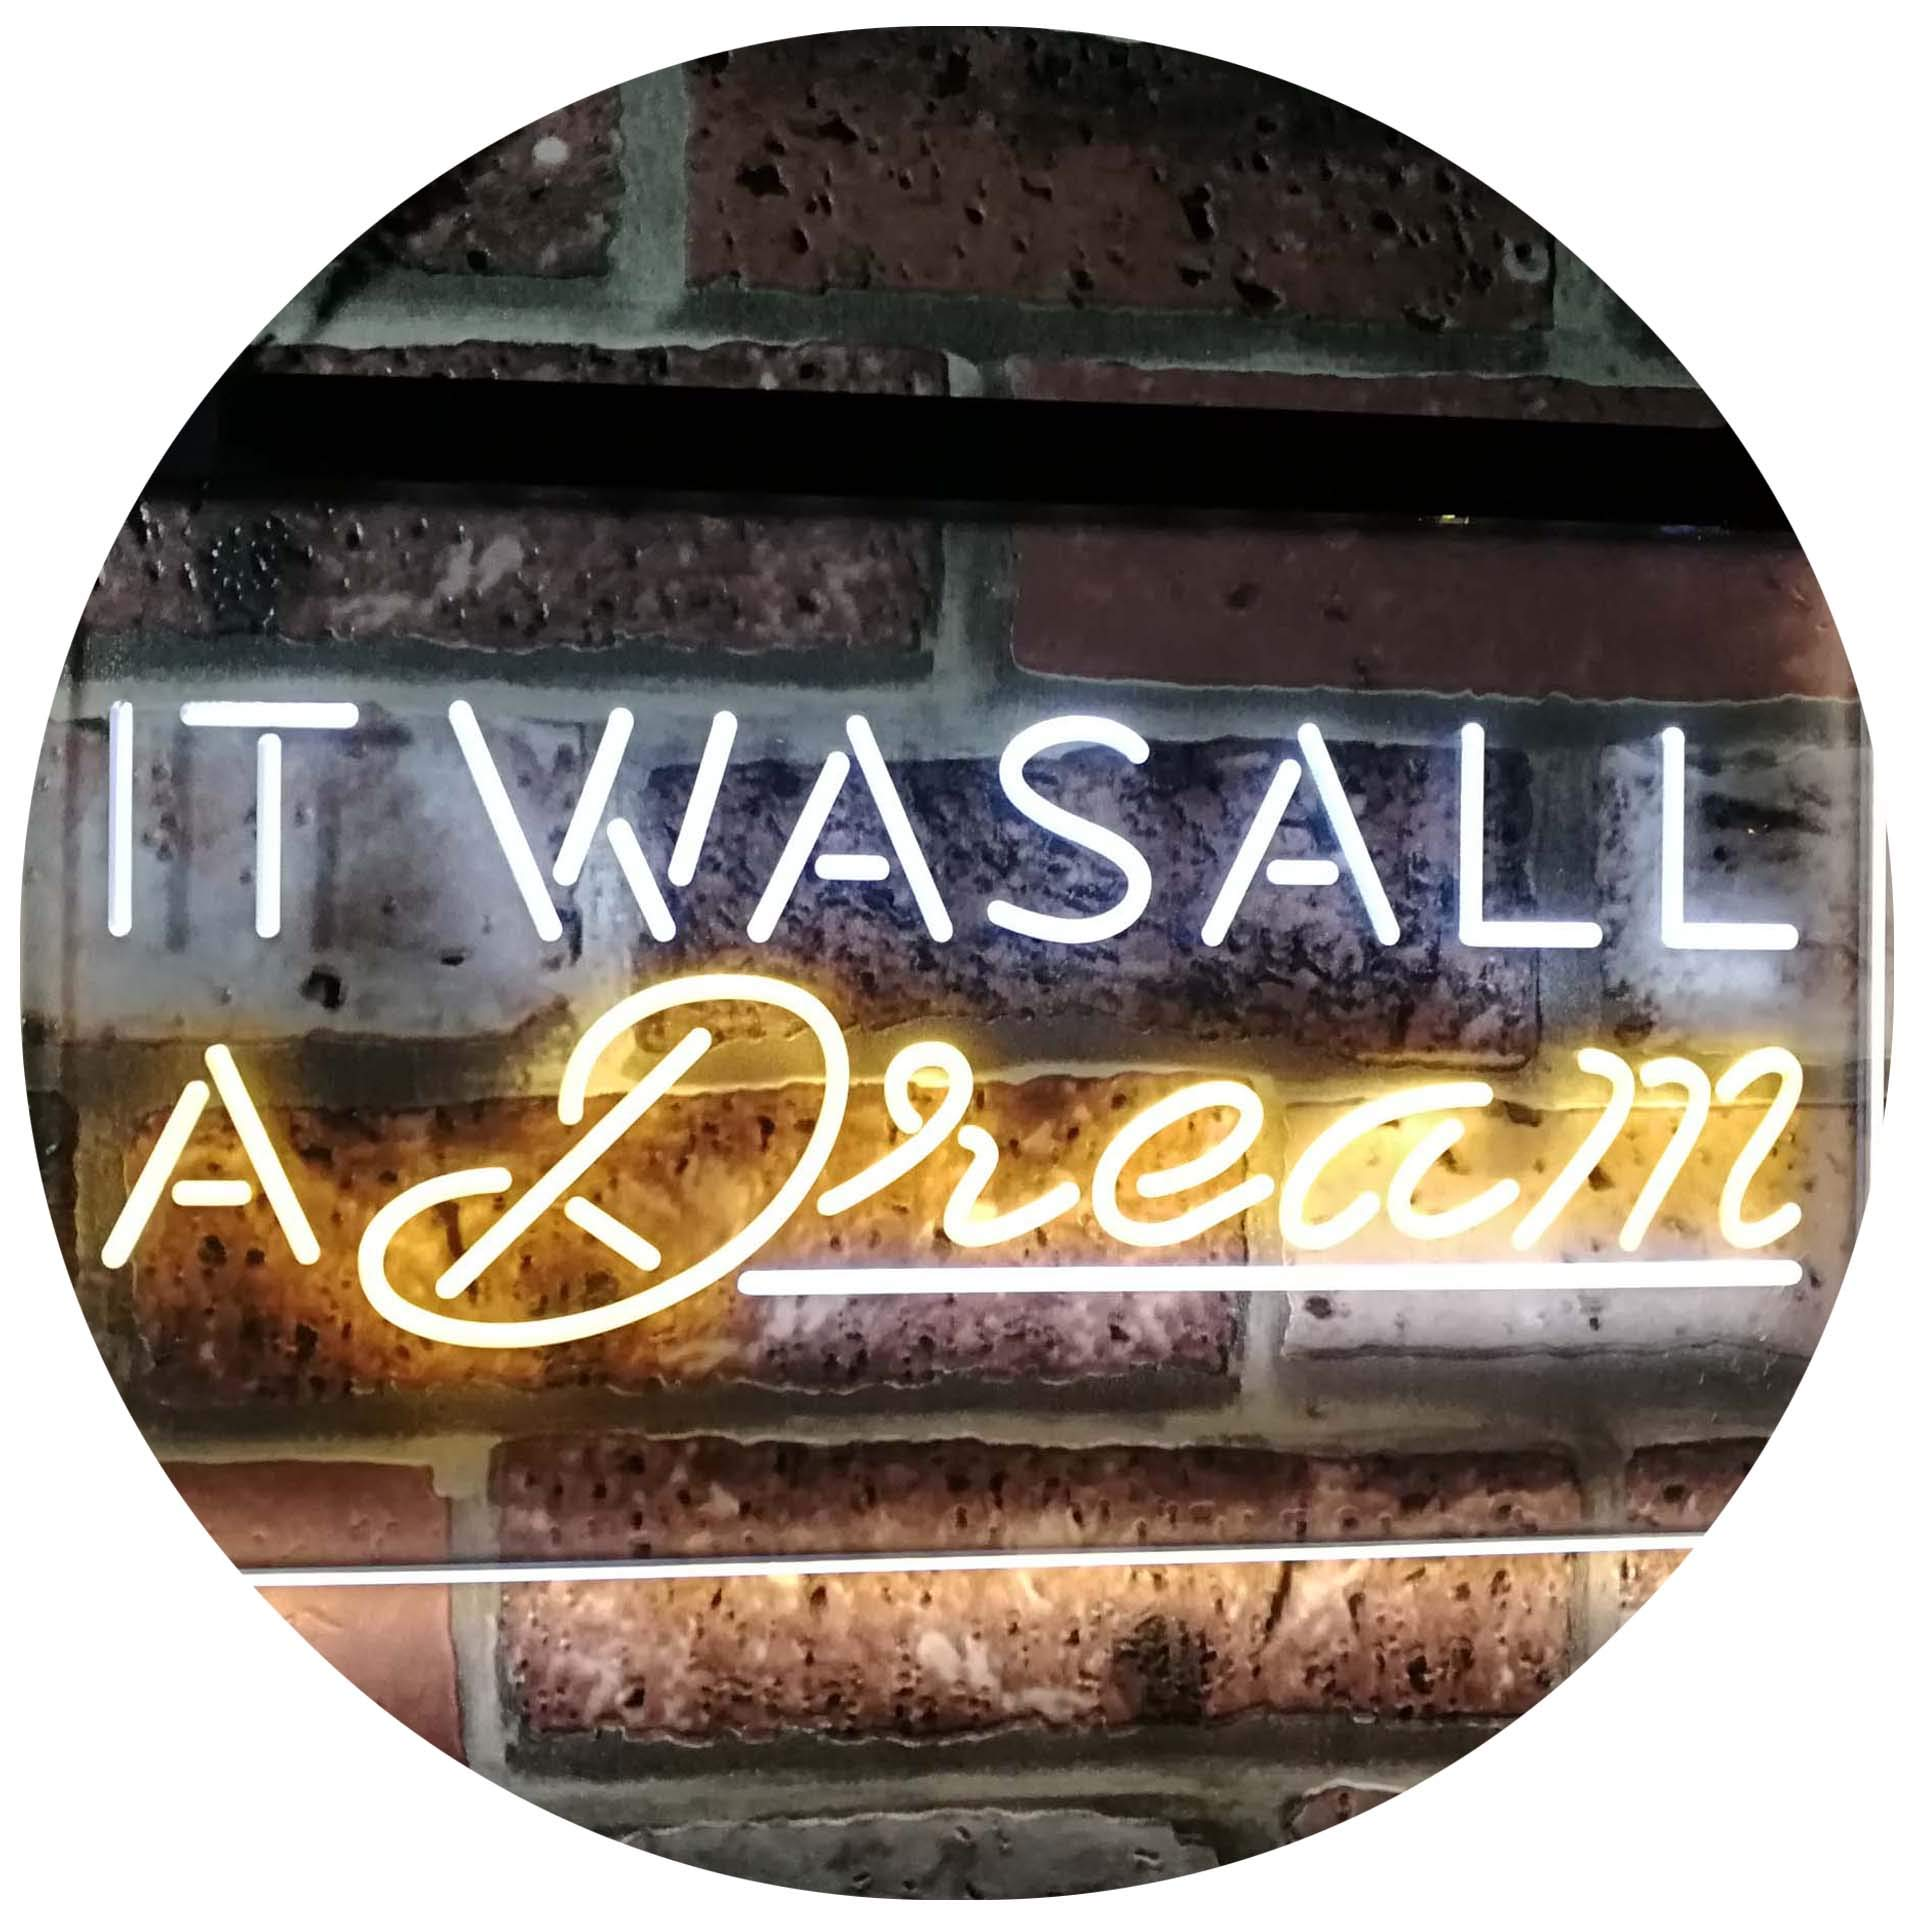 ADVPRO It was All a Dream Home Décor Gift Dual Color LED Neon Sign White & Yellow 16 x 12 Inches st6s43-i3122-wy